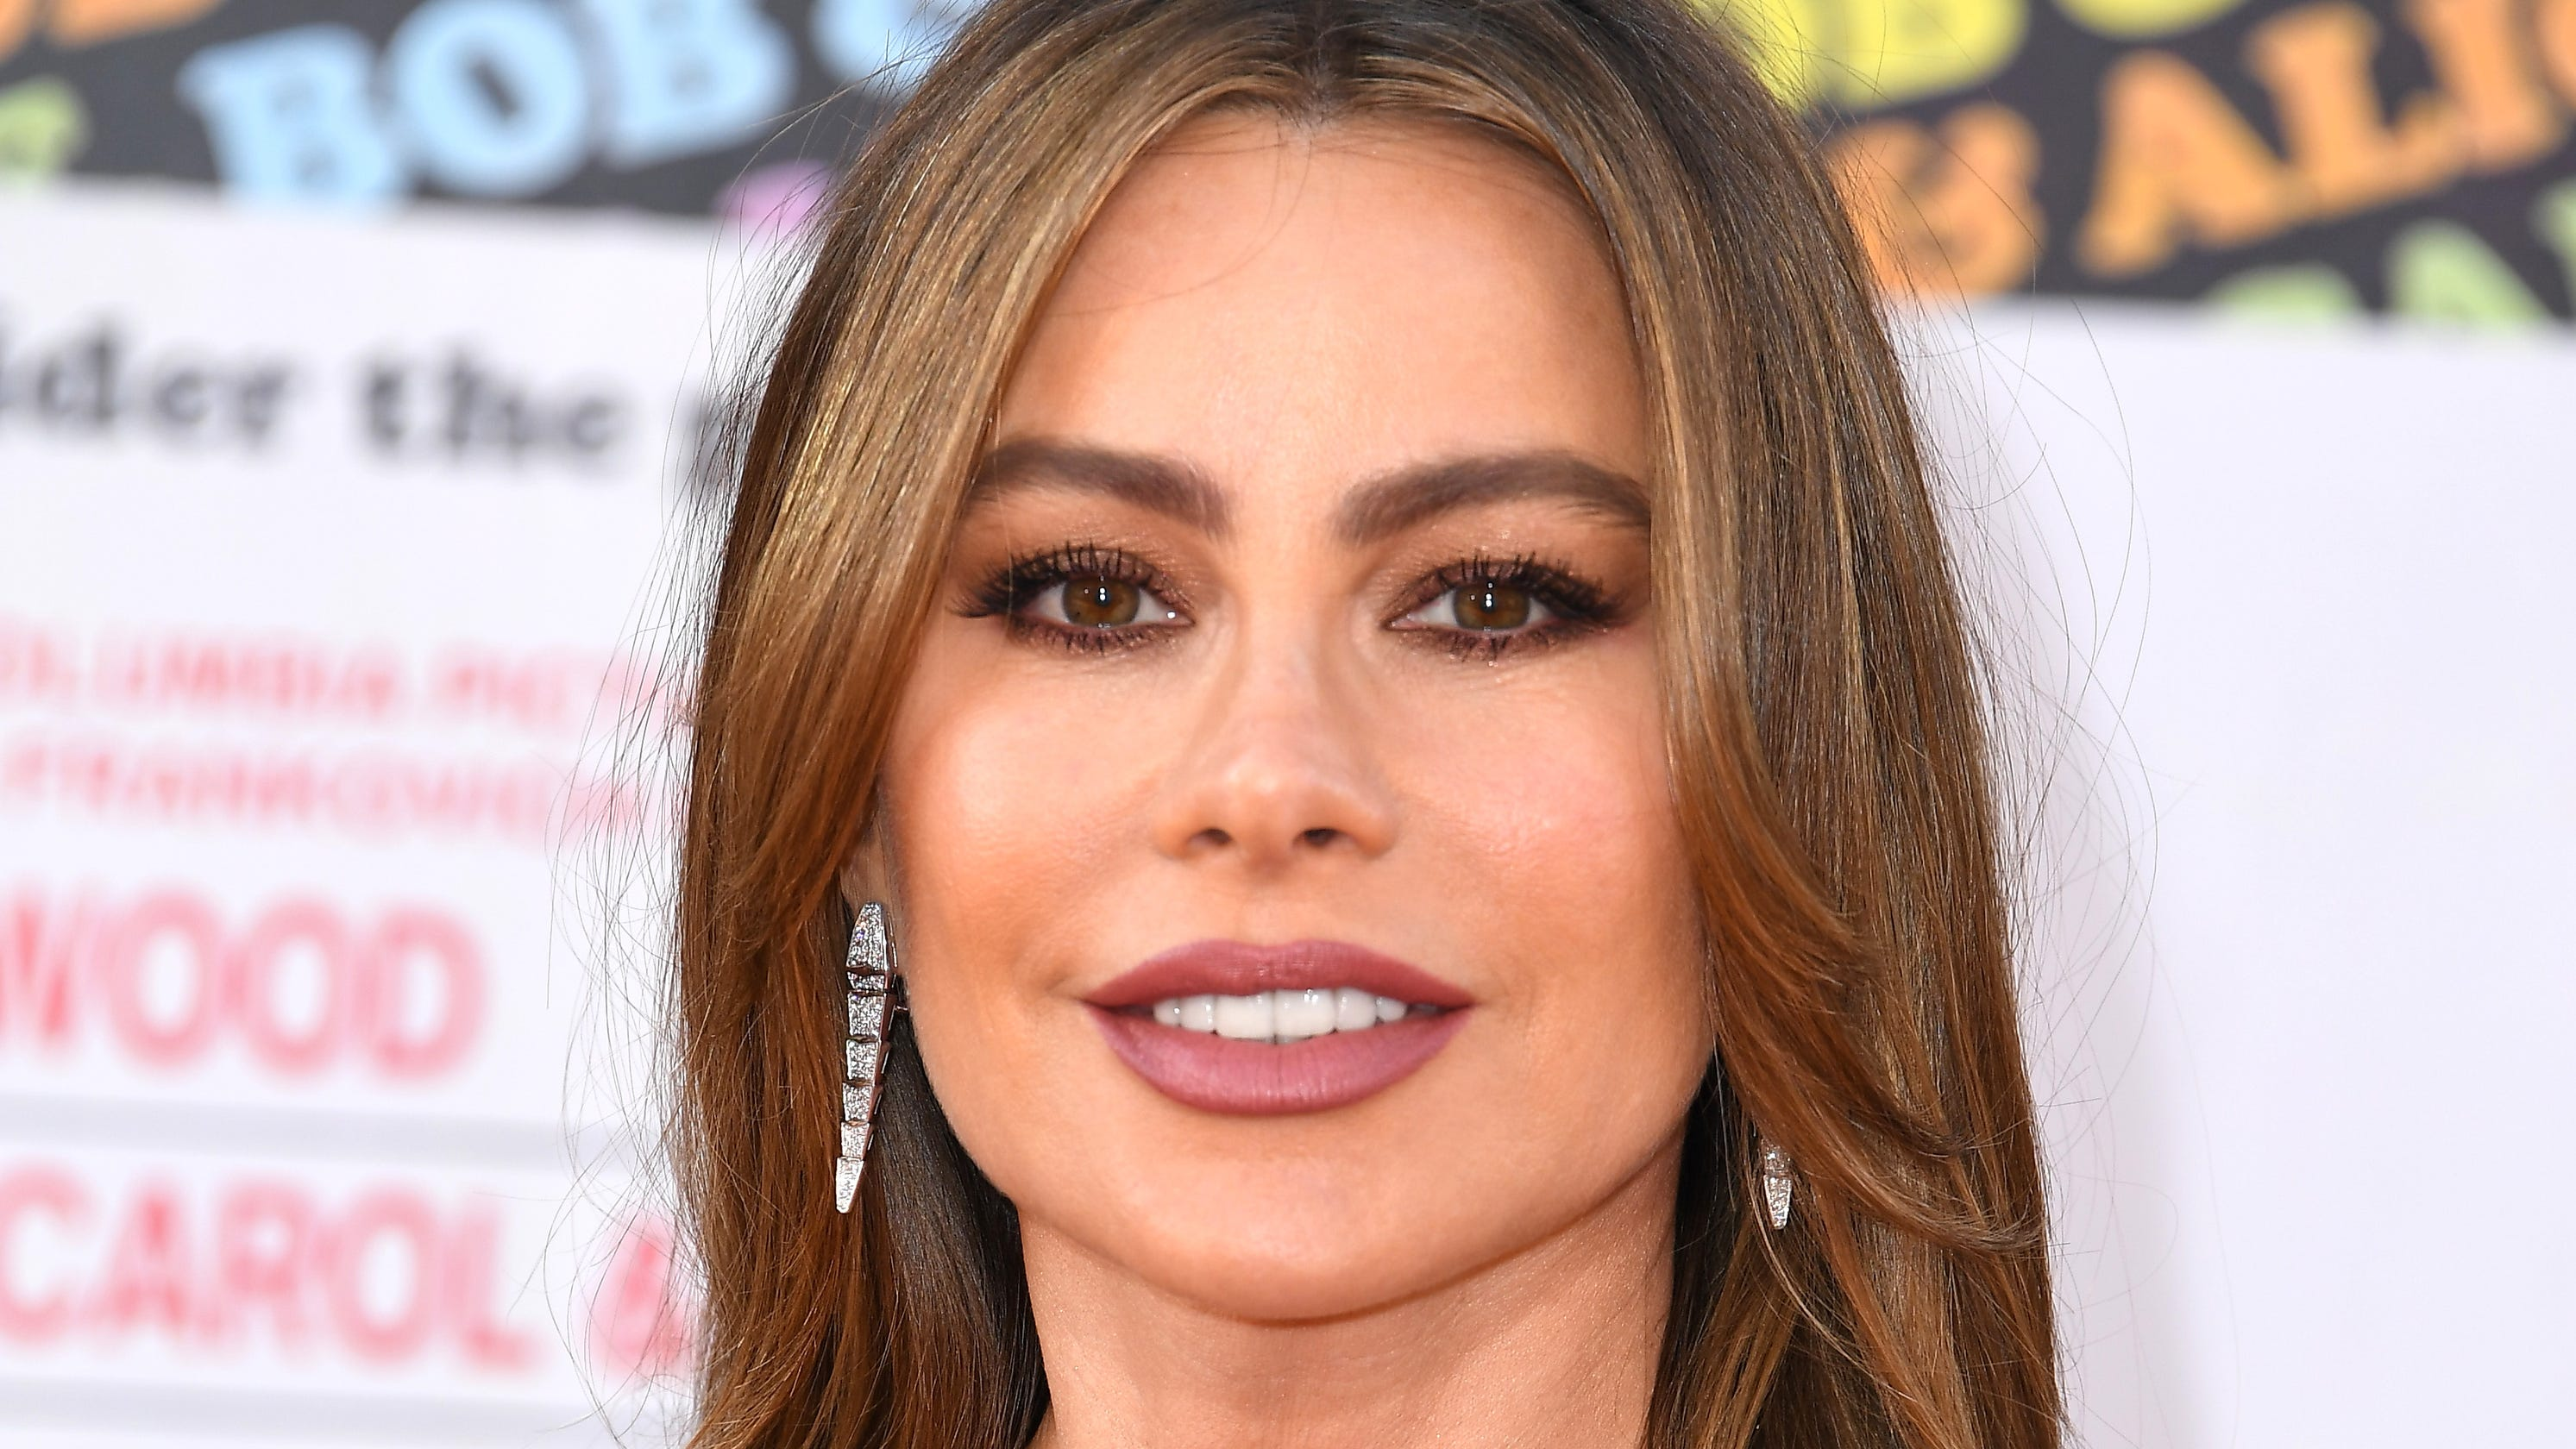 Sofia Vergara reminisces about the '90s in youthful throwback bikini photo